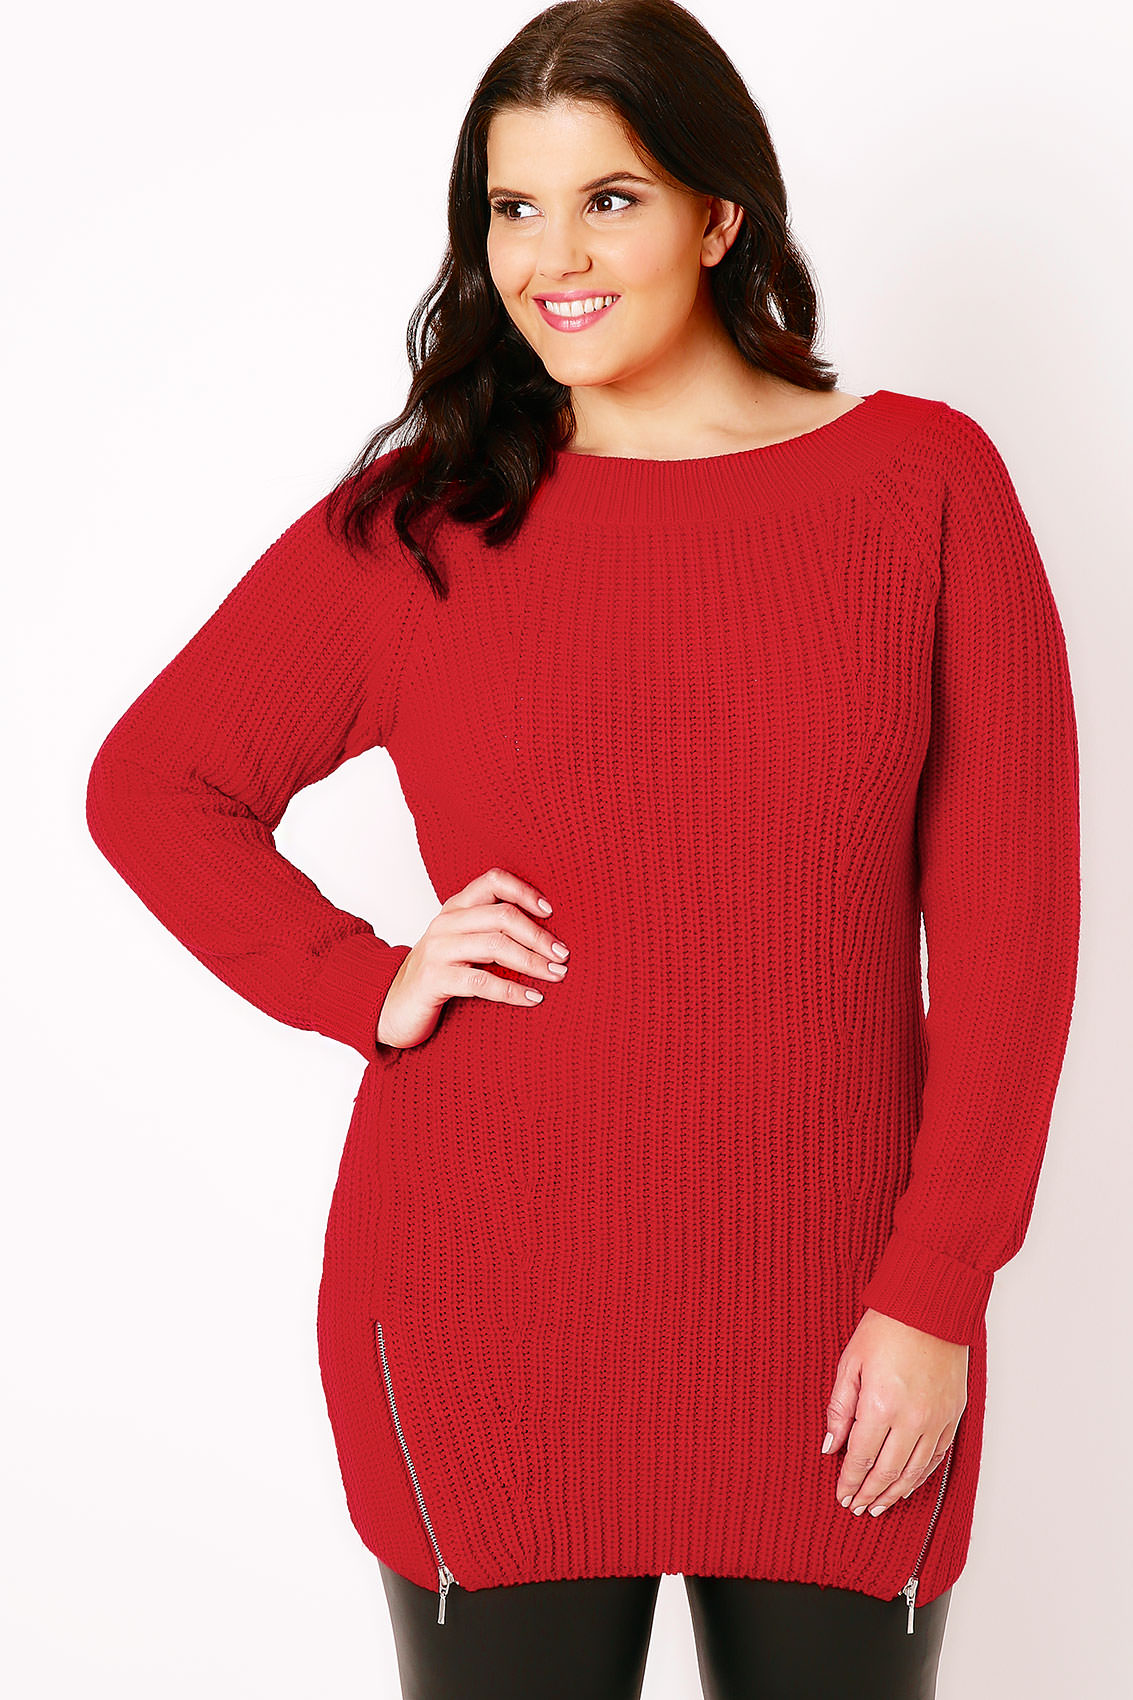 red knitted jumper with zip hem detail plus size 16 to 36. Black Bedroom Furniture Sets. Home Design Ideas